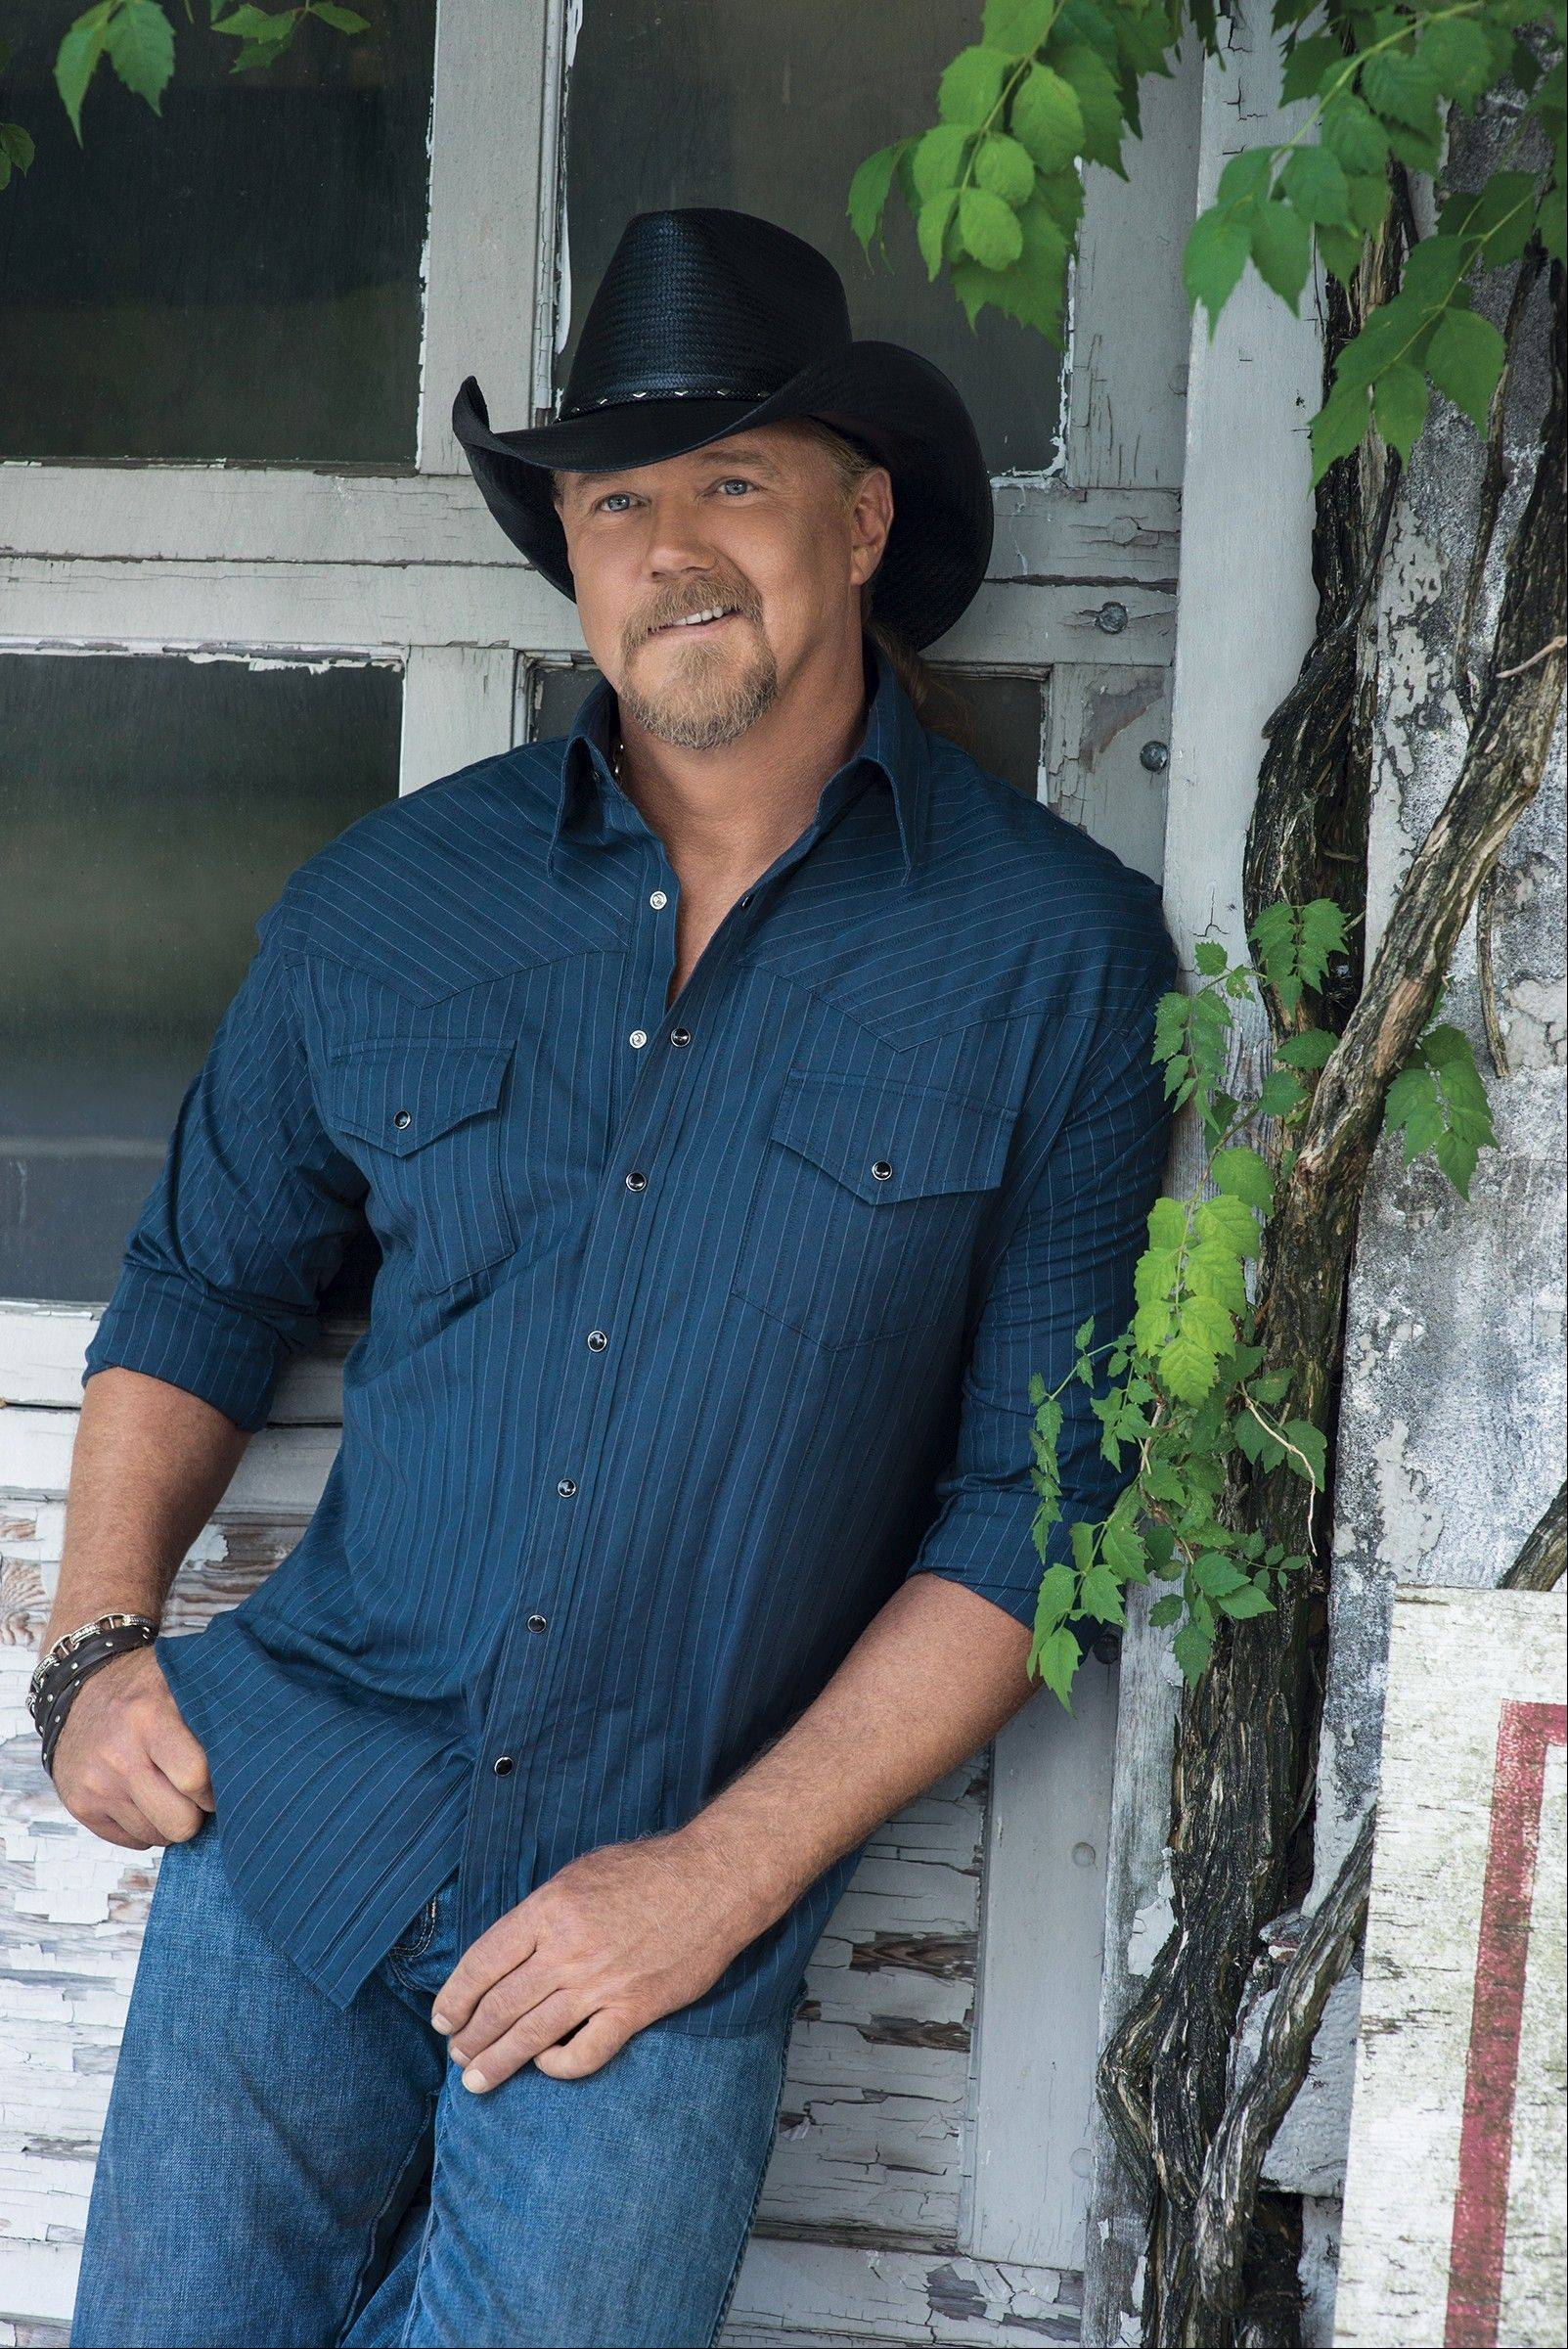 Trace Adkins is set to perform Saturday at the RiverEdge Park in Aurora.